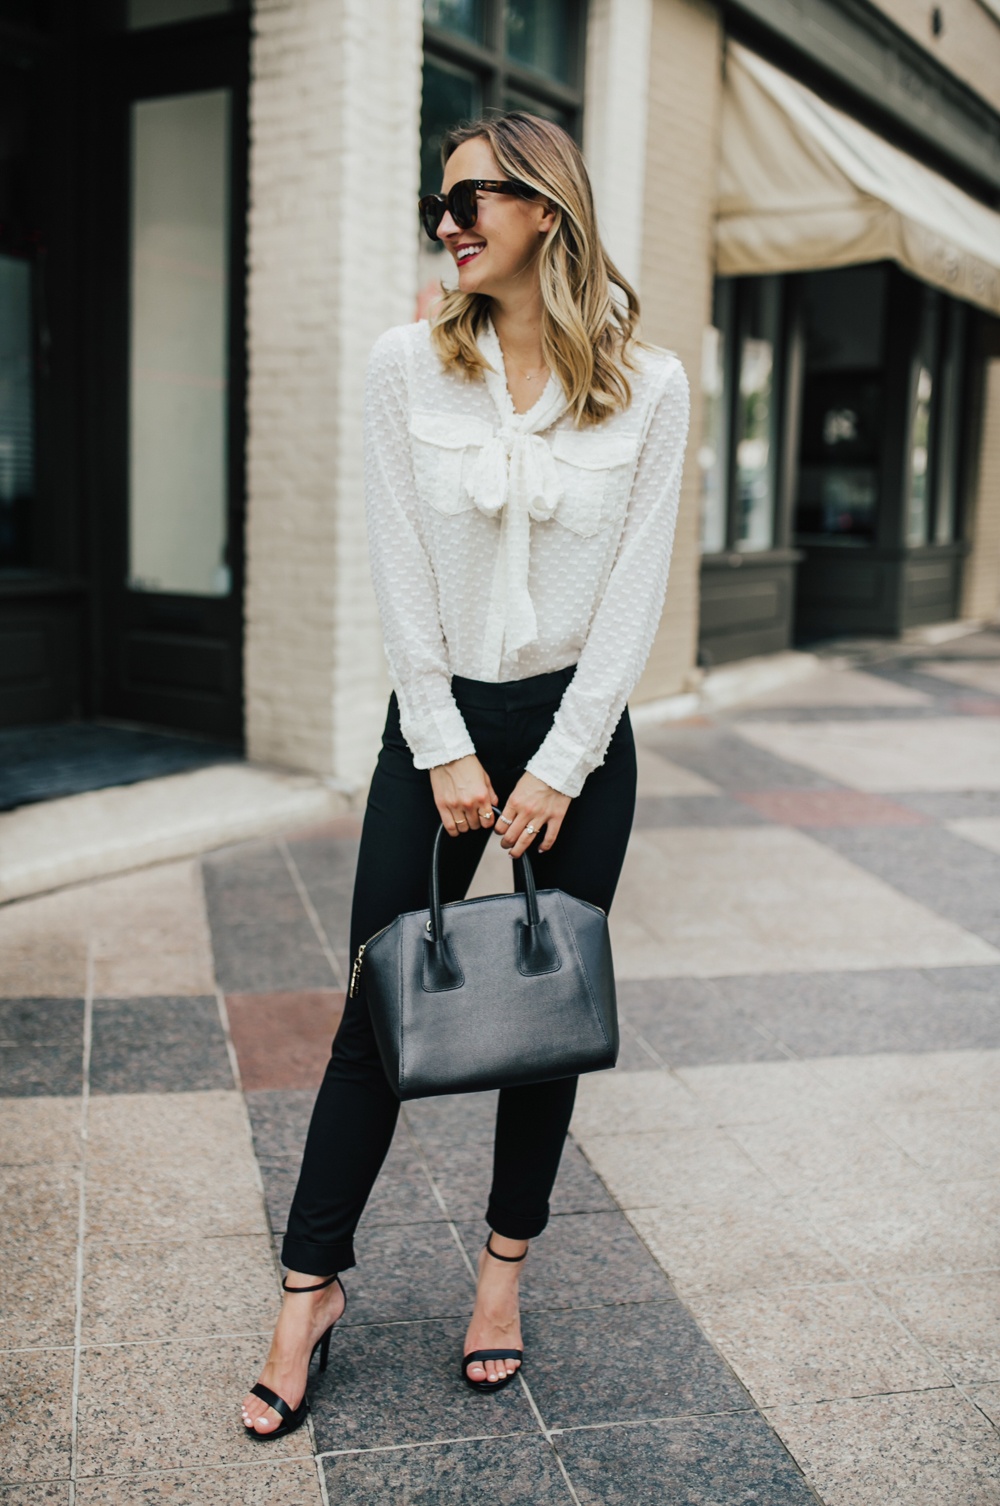 livvyland-blog-olivia-watson-fashion-blogger-banana-republic-sloan-black-dress-pants-pussybow-top-work-wear-outfit-inspiration-classic-chic-8